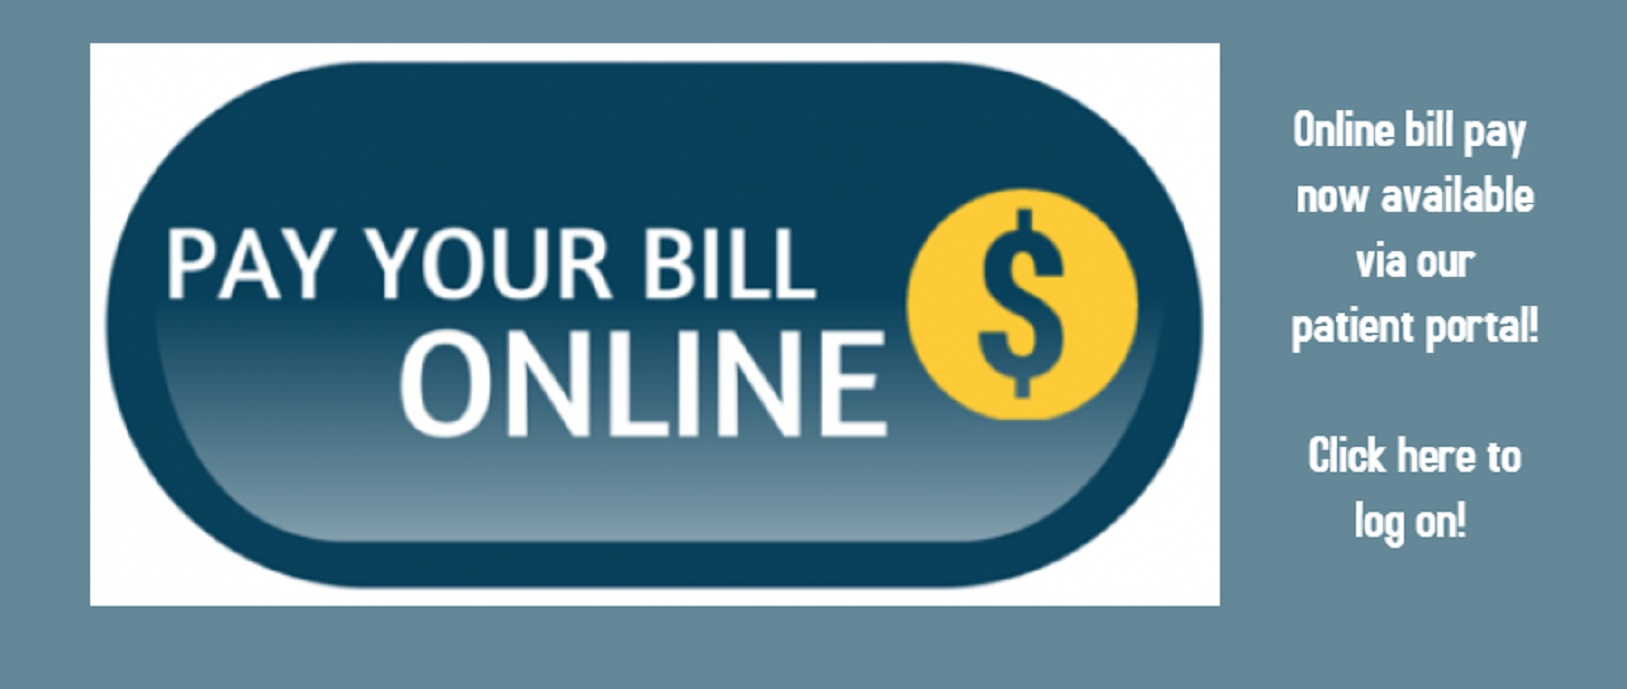 Banner that says: PAY YOUR BILL ONLINE $  Online bill pay now available  via our patient portal! Click here to log on!